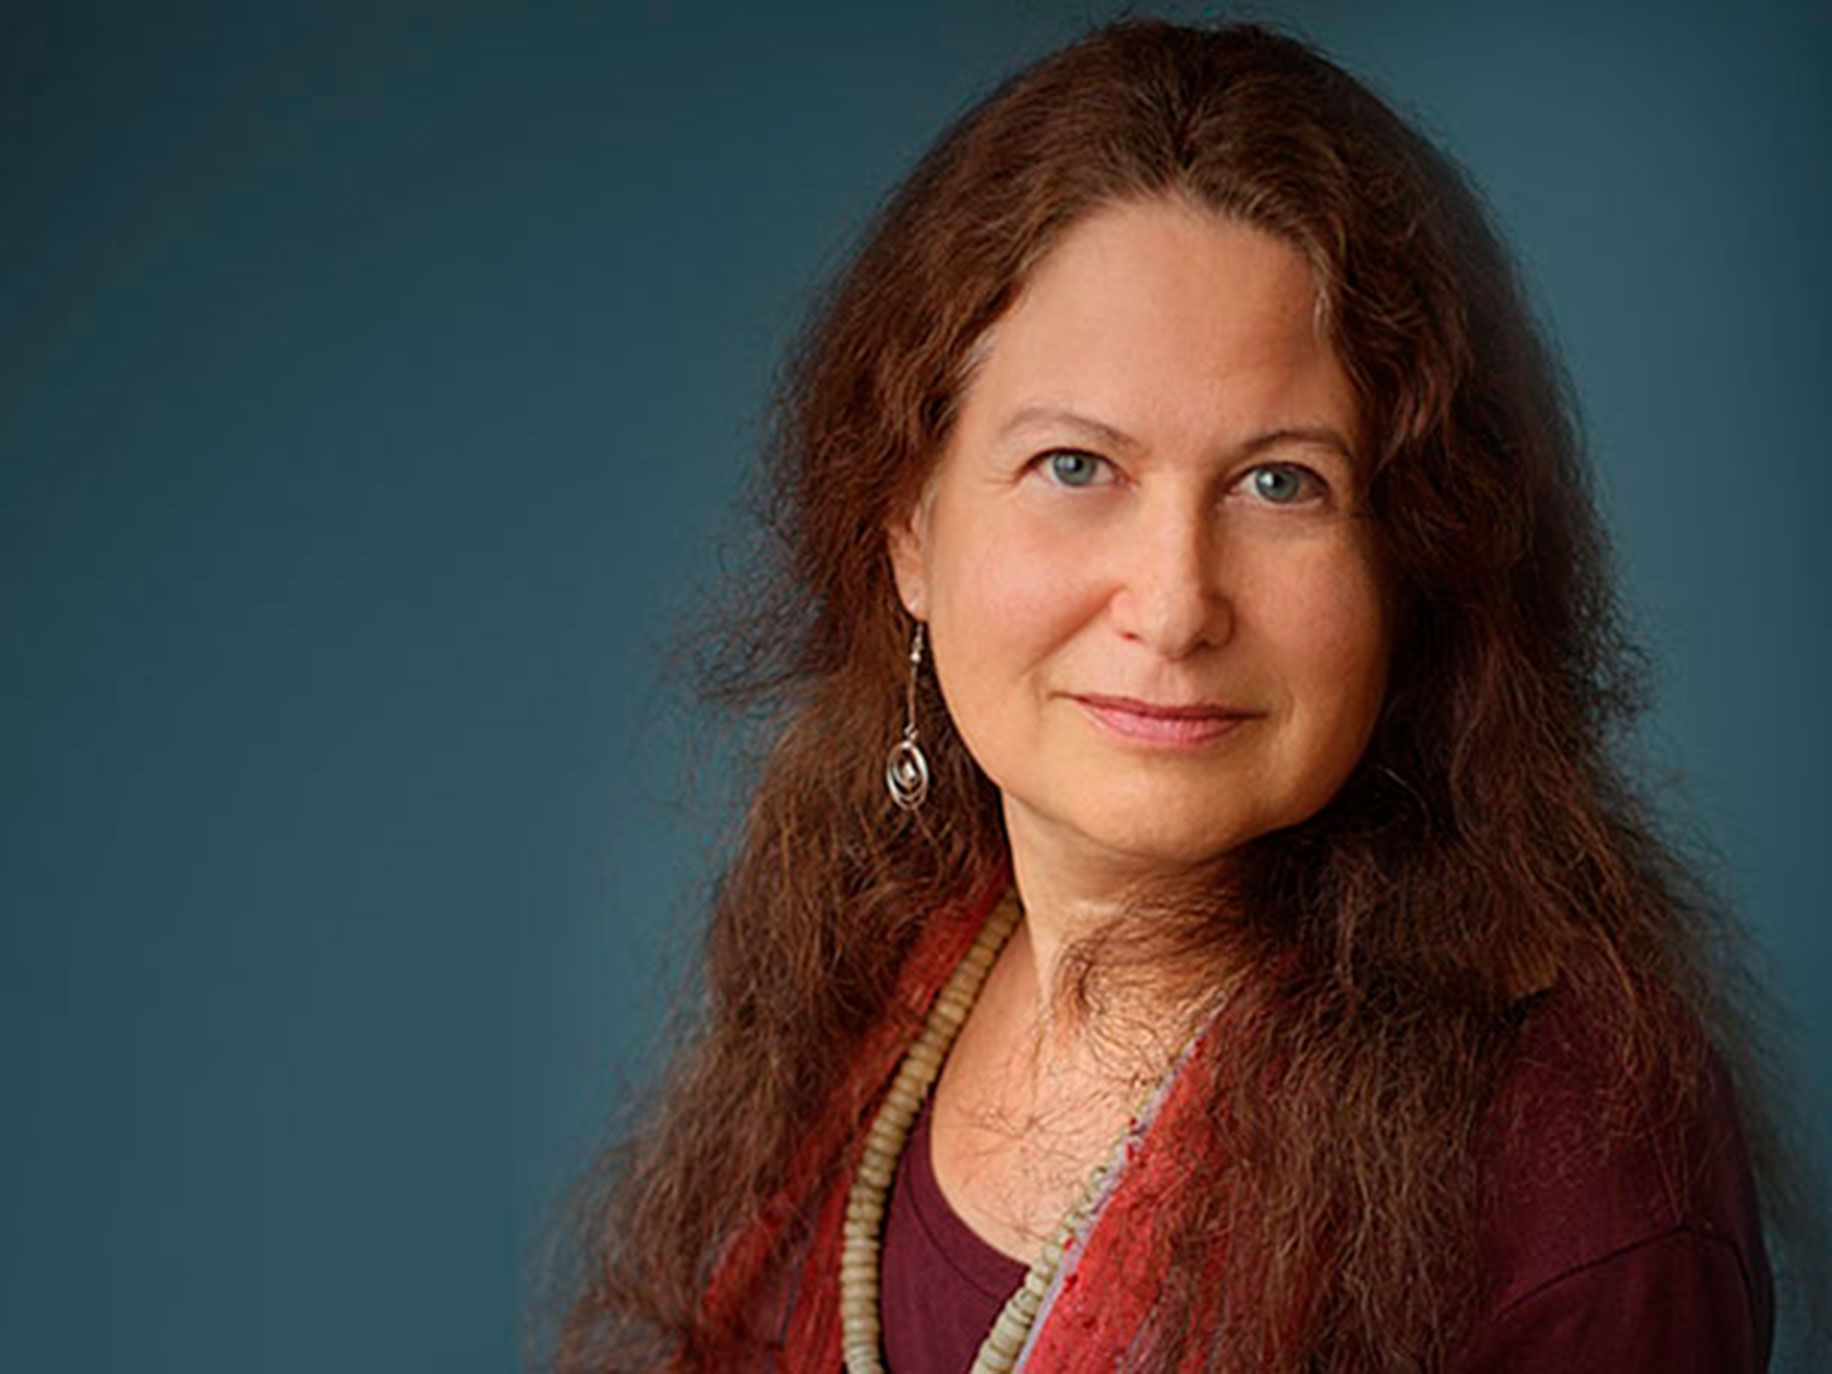 Poet Jane Hirshfield stopped writing for eight years to study at the San Francisco Zen Center.